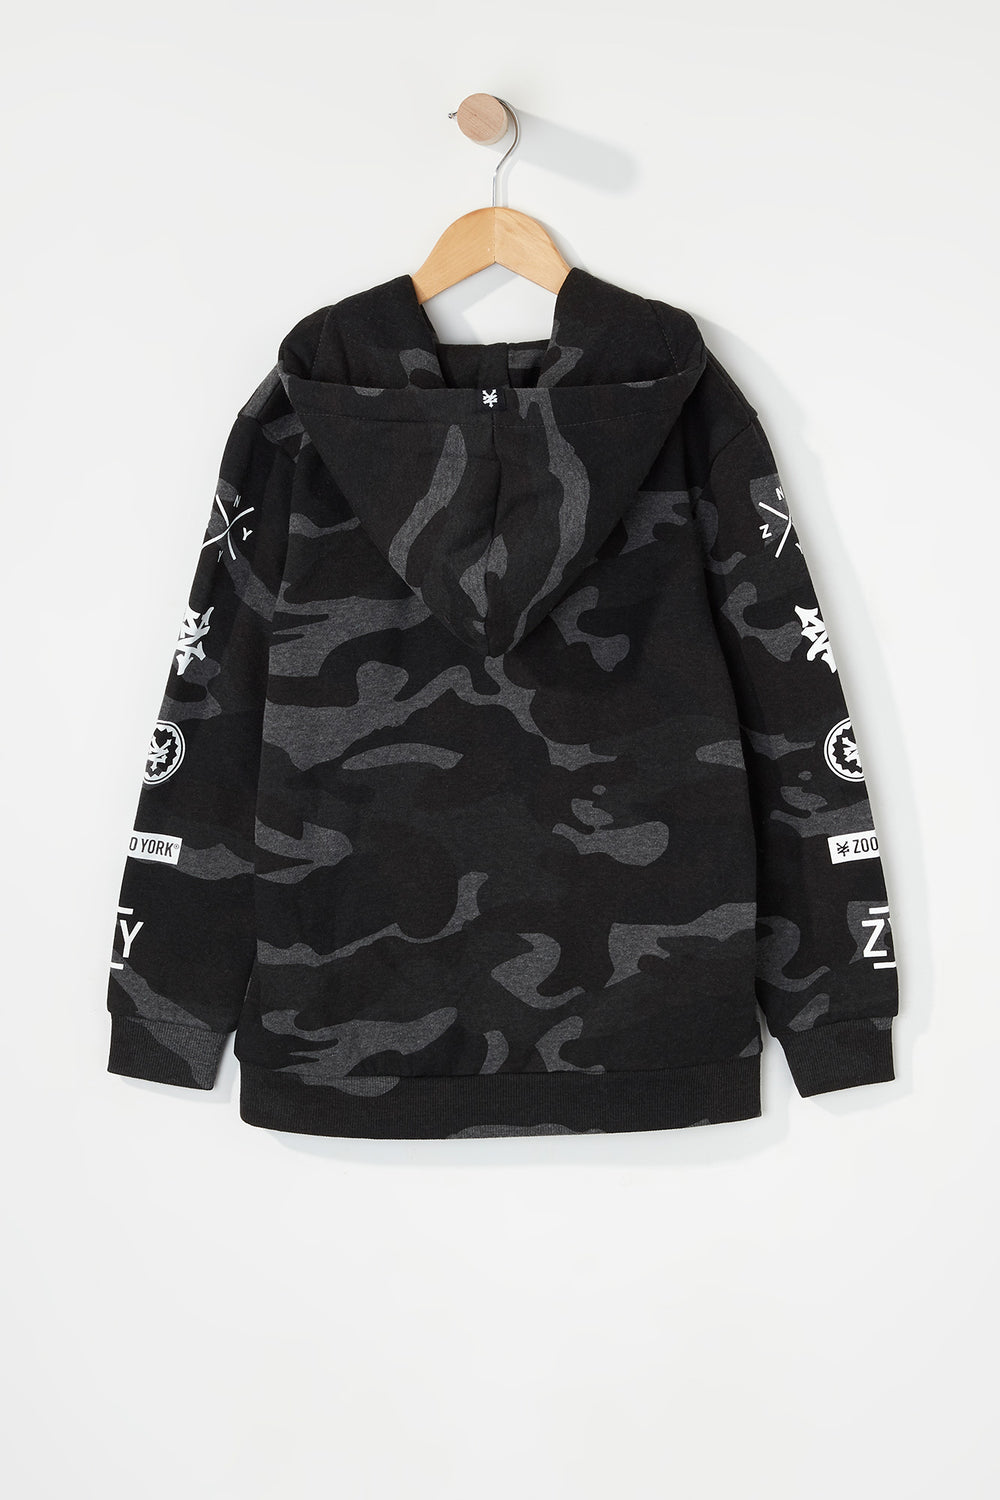 Zoo York Boys Camo Hoodie Black with White